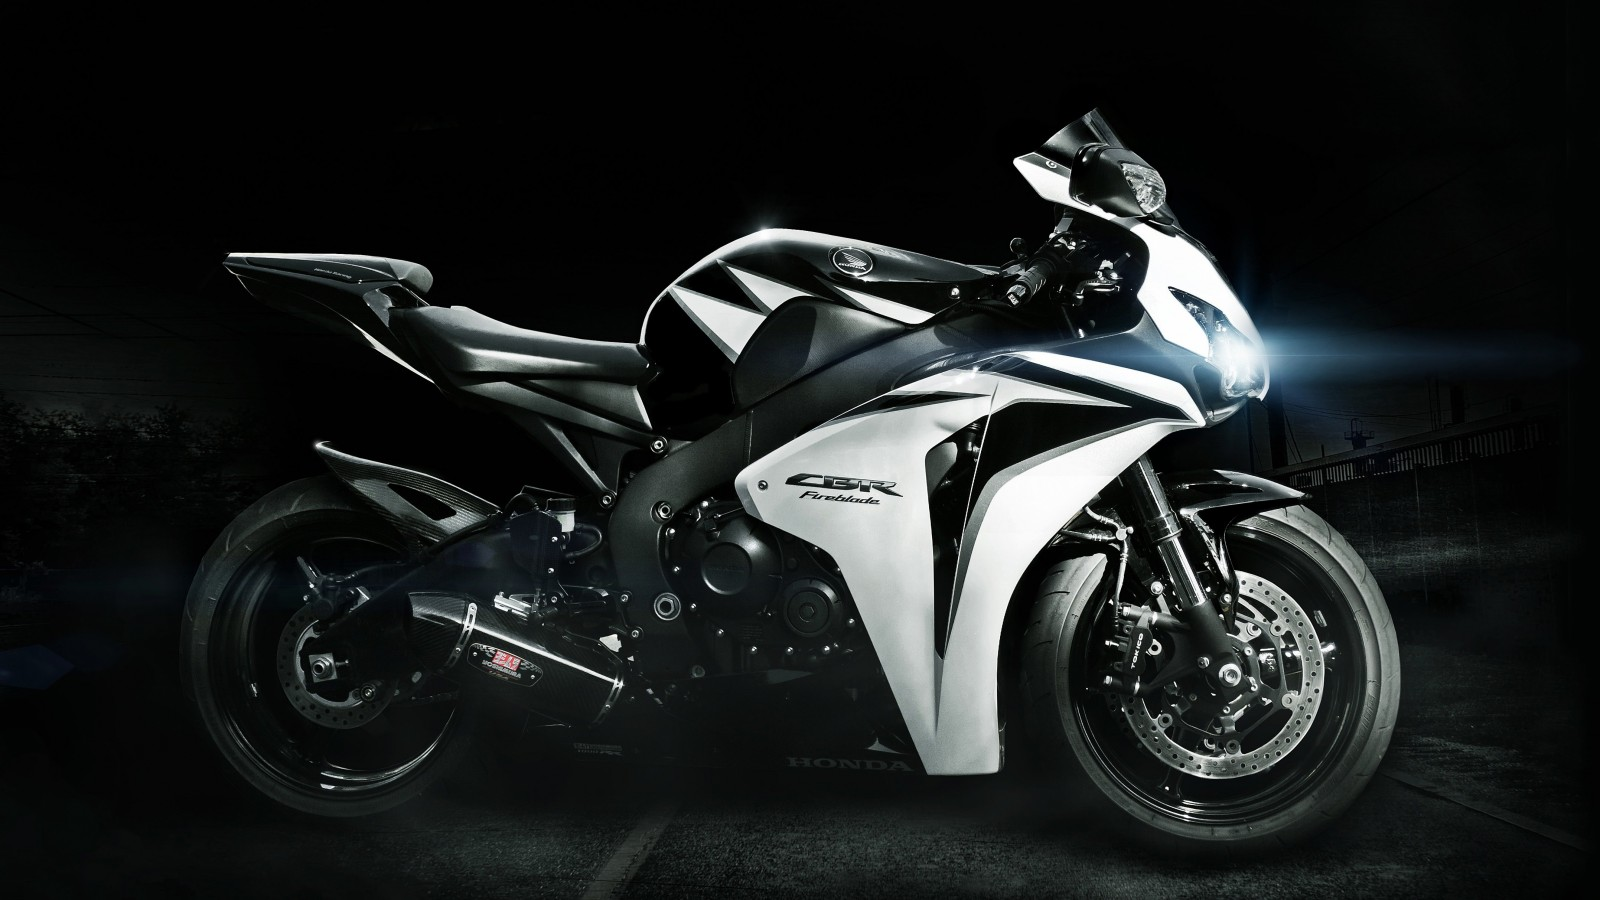 Honda CBR Fireblade Wallpaper for Desktop 1600x900